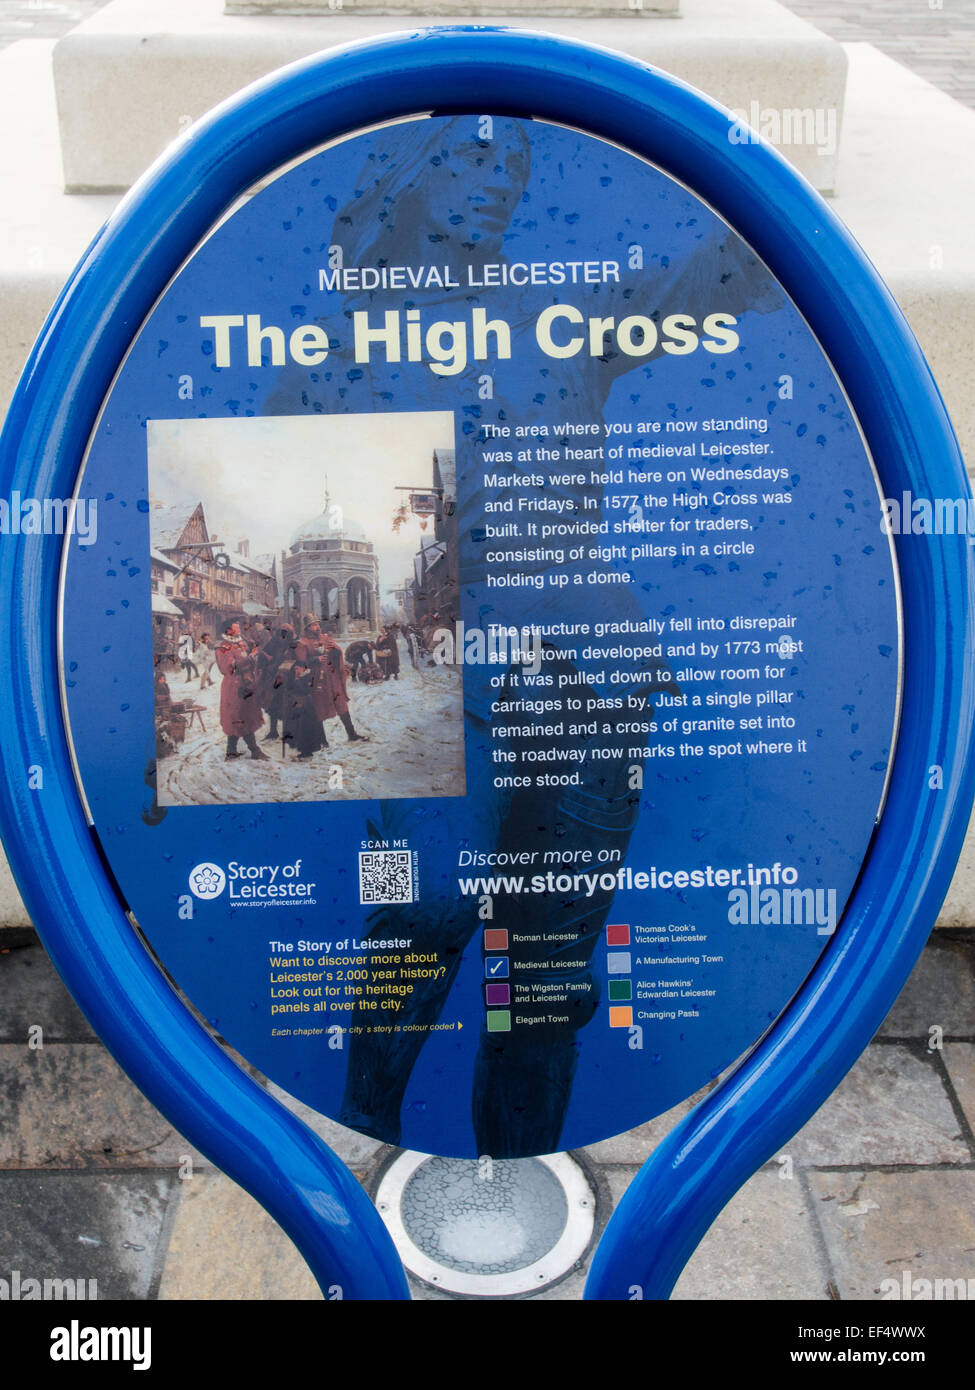 Street Furniture; Blue metal Information sign to explain and culture and history of medieval The High Cross. - Stock Image